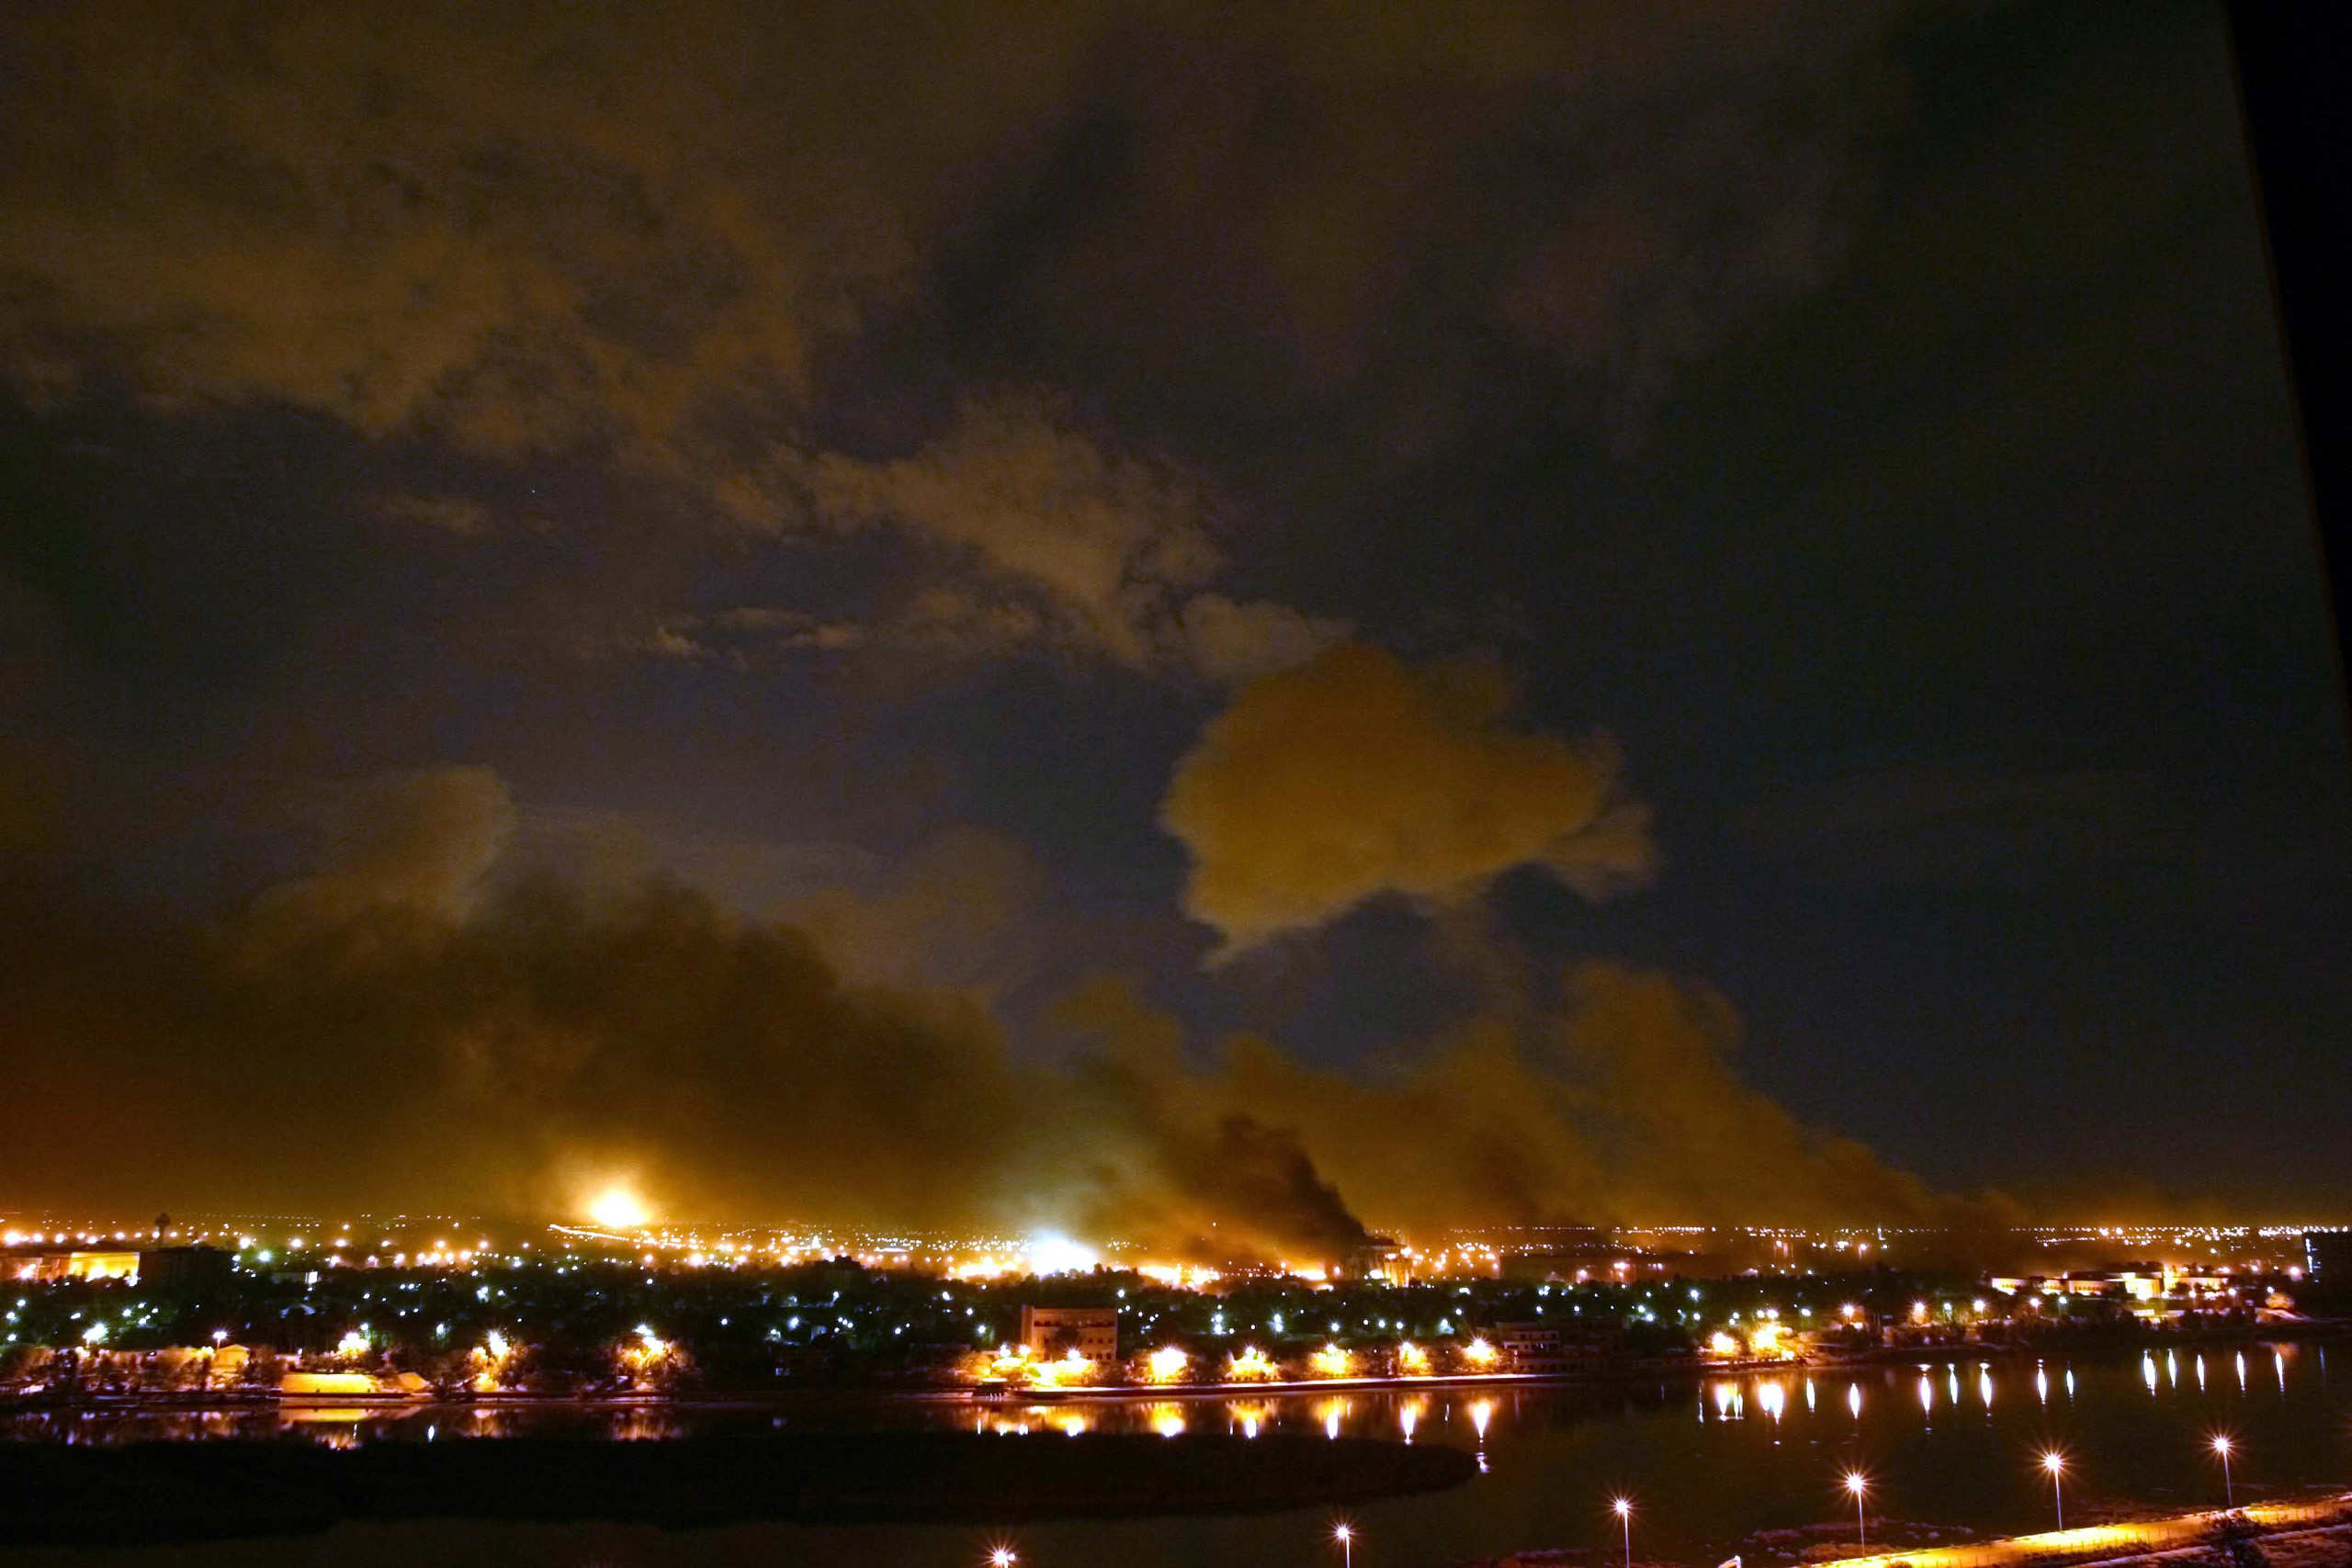 In a U.S. bombing campaign known as  Shock and Awe,  a barrage of bombs rained on the government district of Baghdad in a war waged against the regime of Saddam Hussein, March 21, 2003.